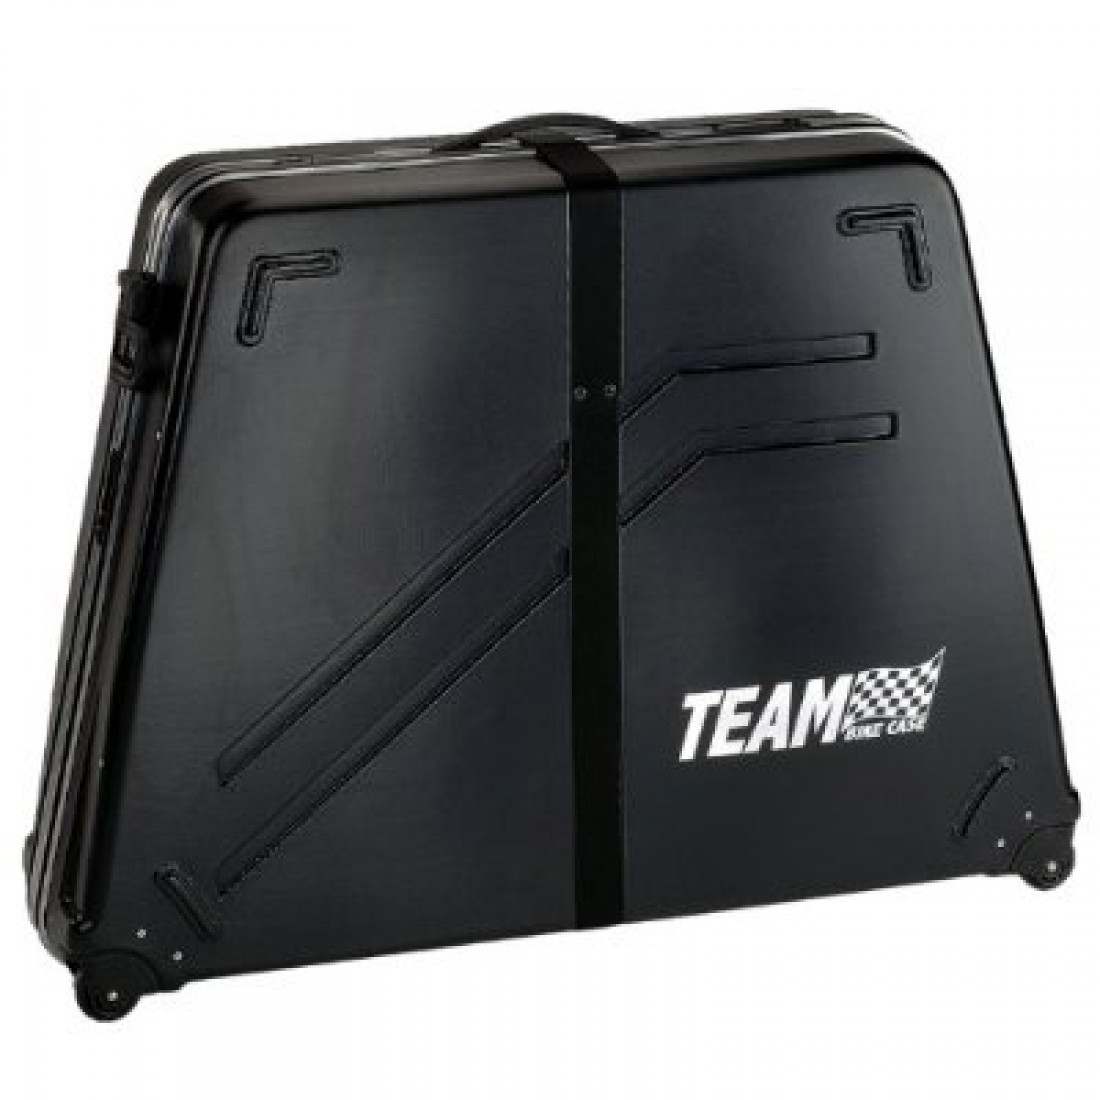 Team Bike Case